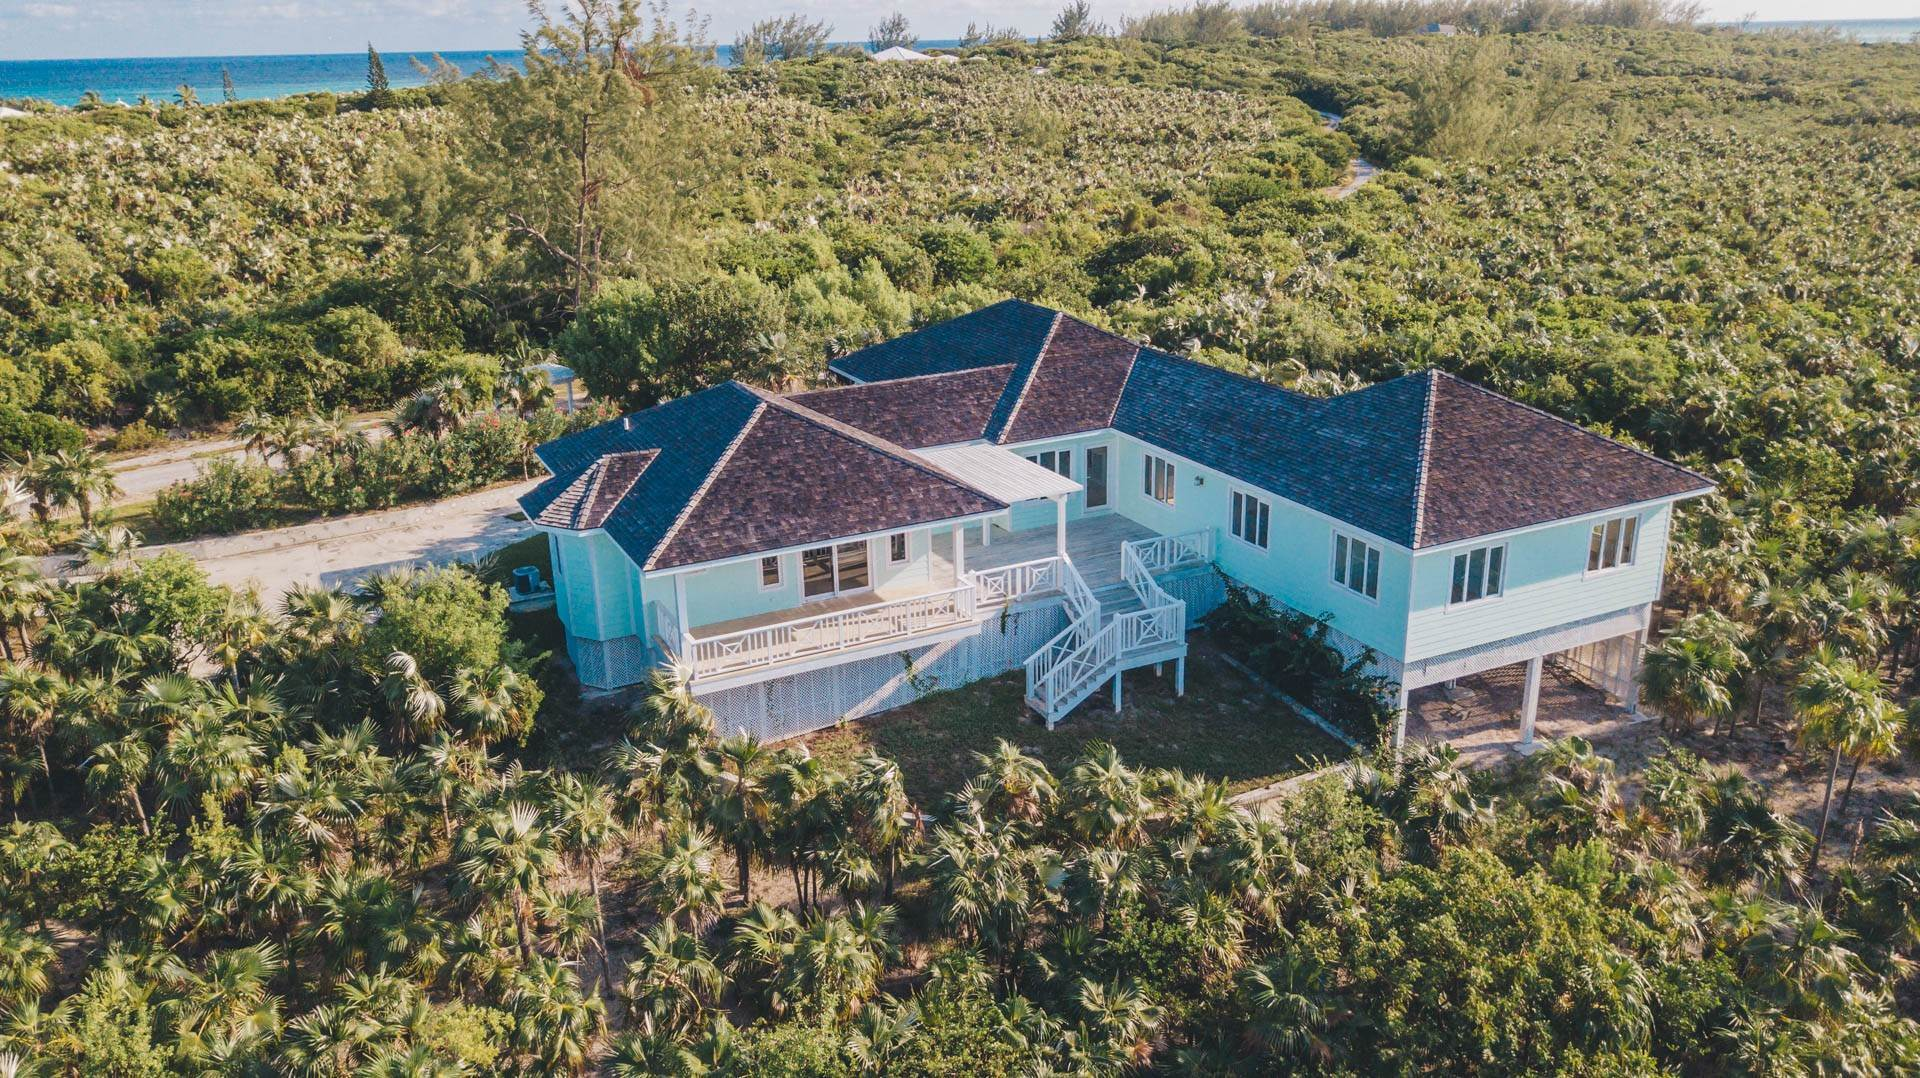 29. Single Family Homes for Sale at Savannah Sound Home - Windermere Island - MLS 44478 Windermere Island, Eleuthera, Bahamas